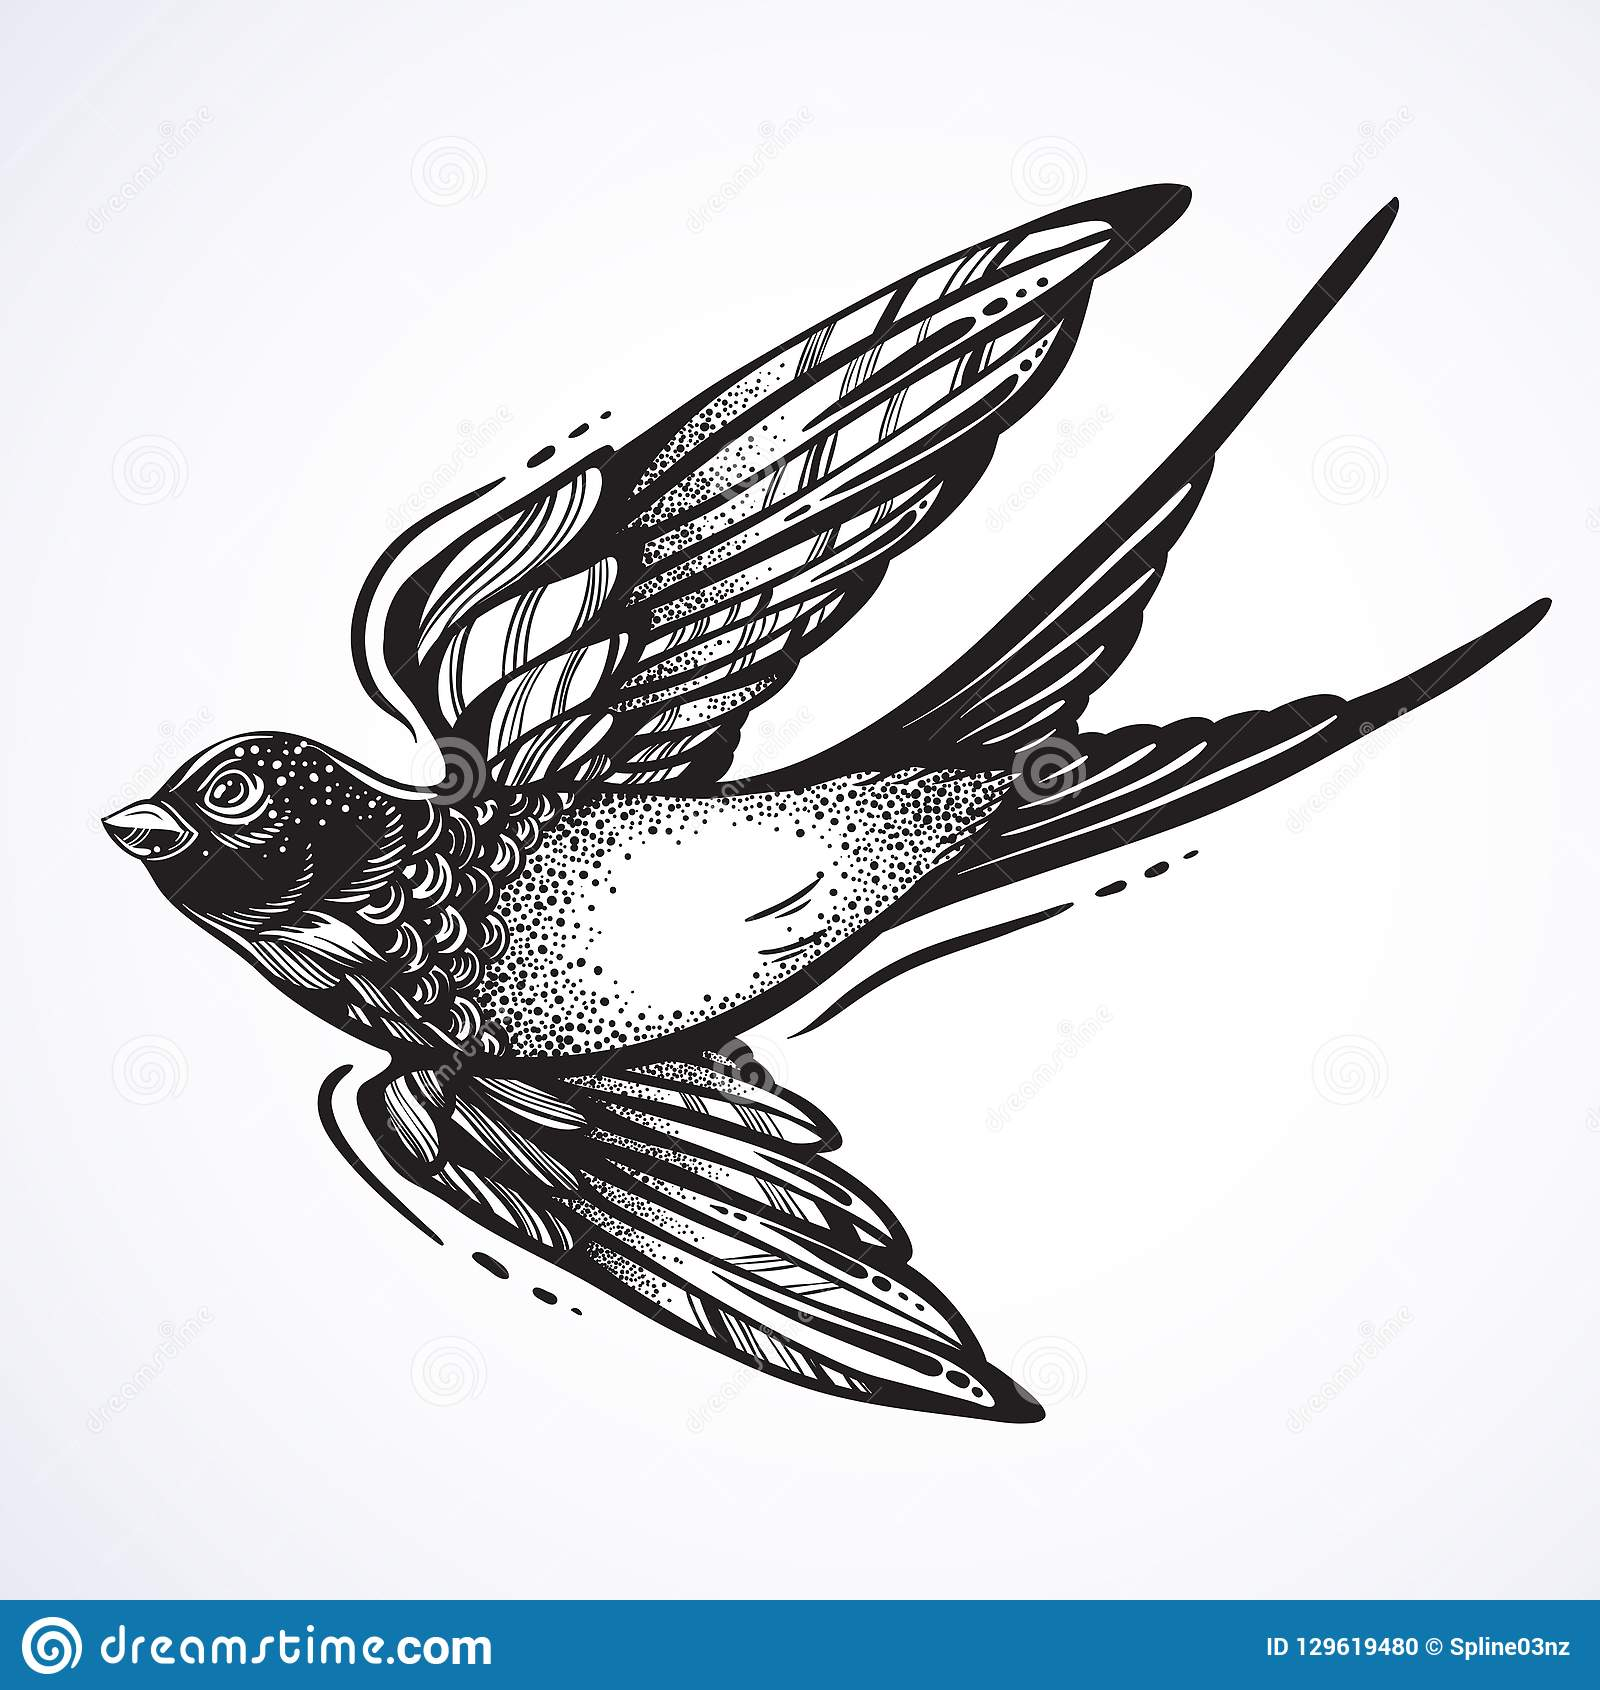 Birds Tattoos Illustrations: Blackwork Tattoo Flash. Beautifully Detailed Flying